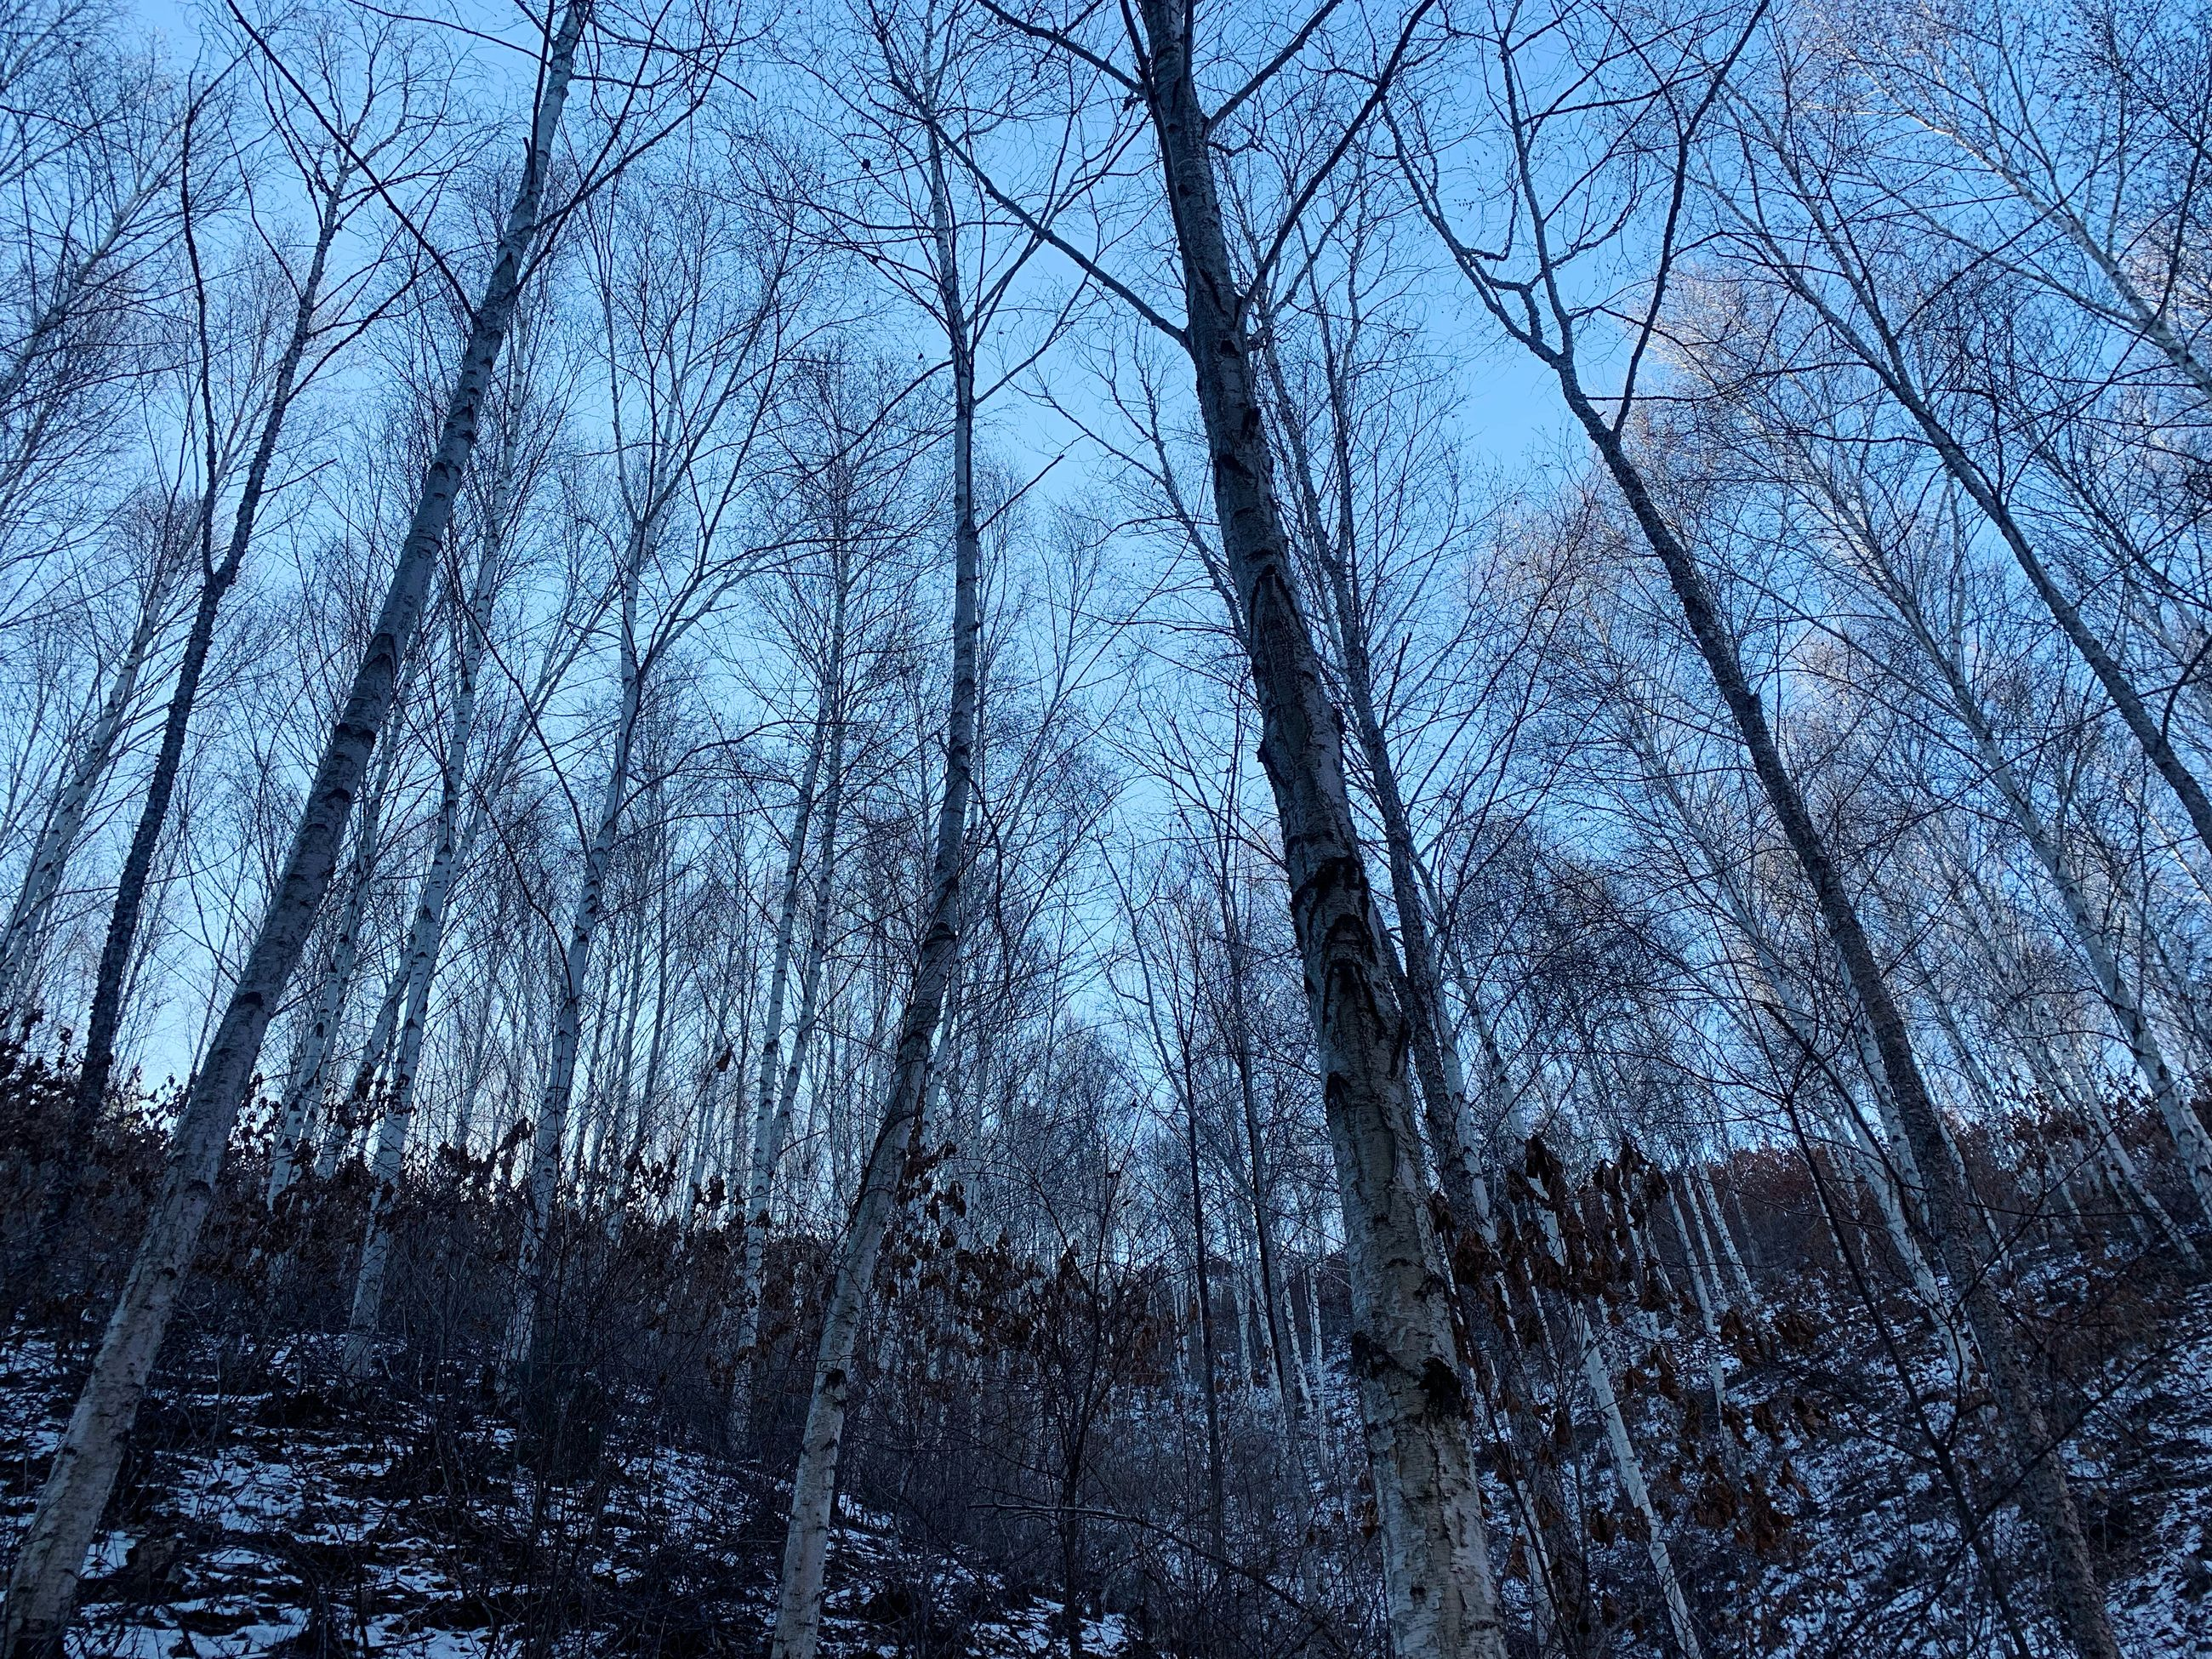 tree, bare tree, plant, forest, tranquility, land, no people, trunk, tree trunk, beauty in nature, nature, woodland, cold temperature, low angle view, sky, winter, tranquil scene, branch, snow, outdoors, tree canopy